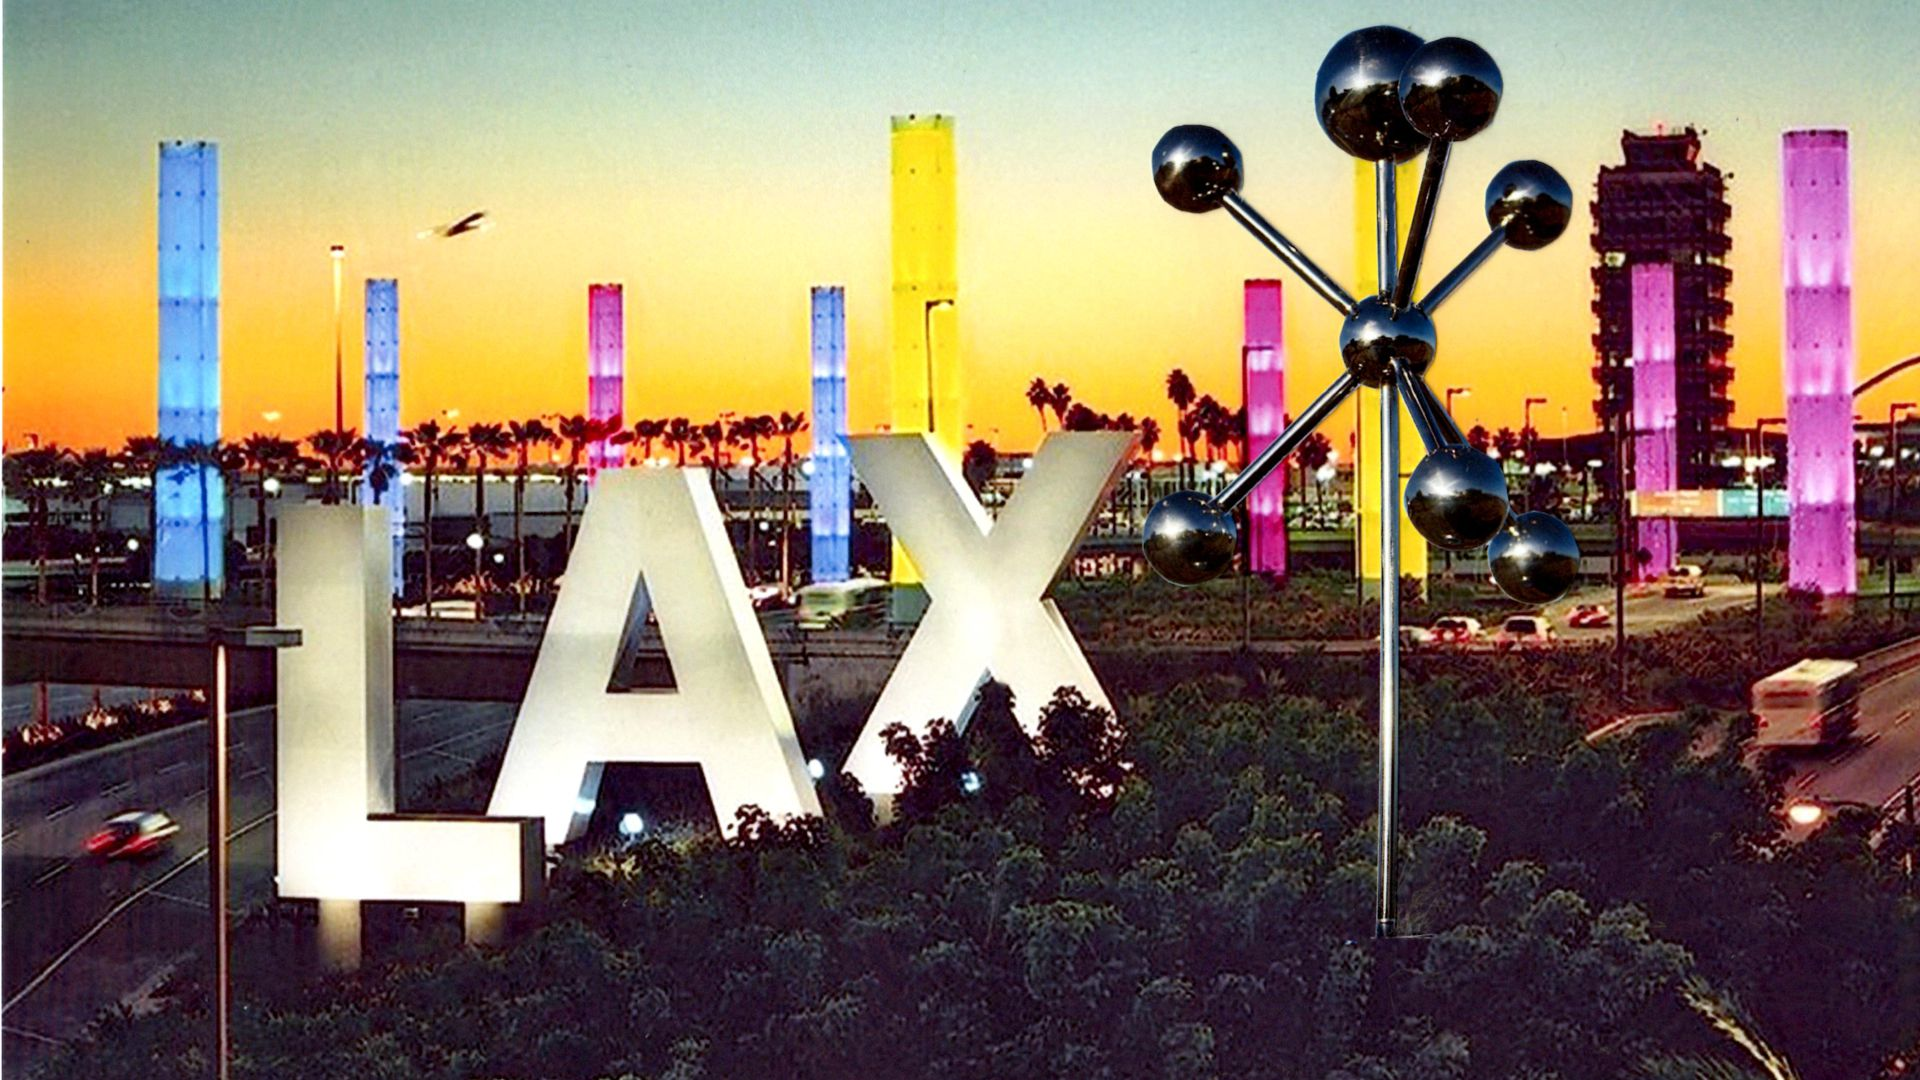 Airport Sky Sculpture LAX, develkoped for LA World Airport, USA, by Hans-Leo Peters 2016